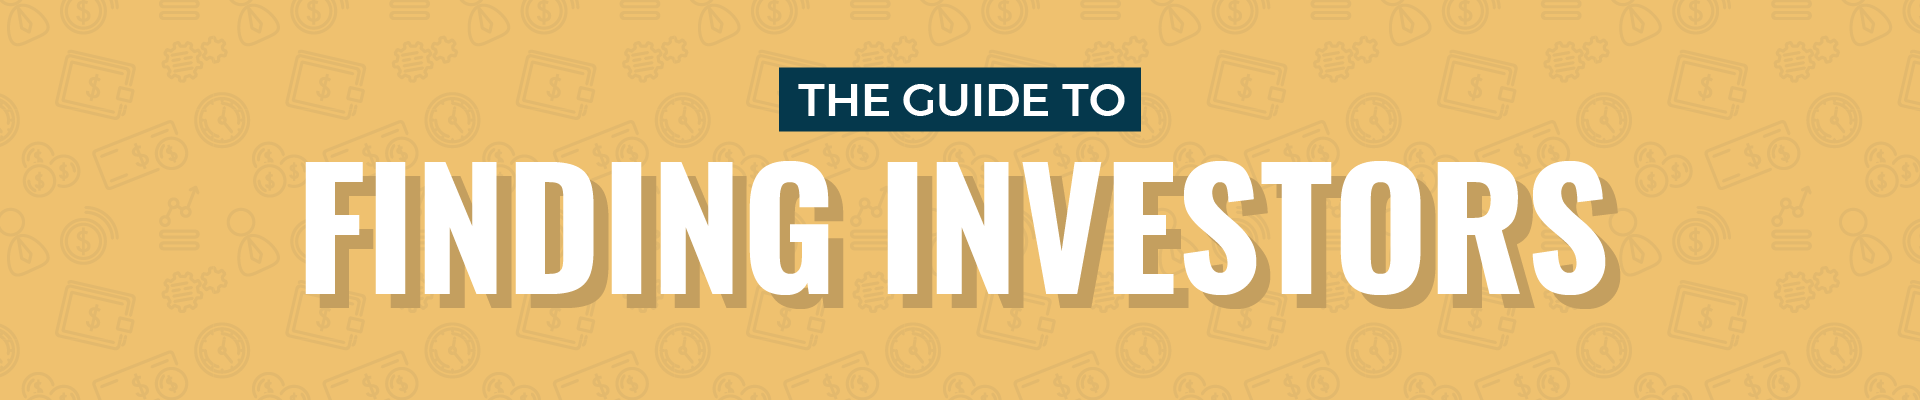 guide to finding investors